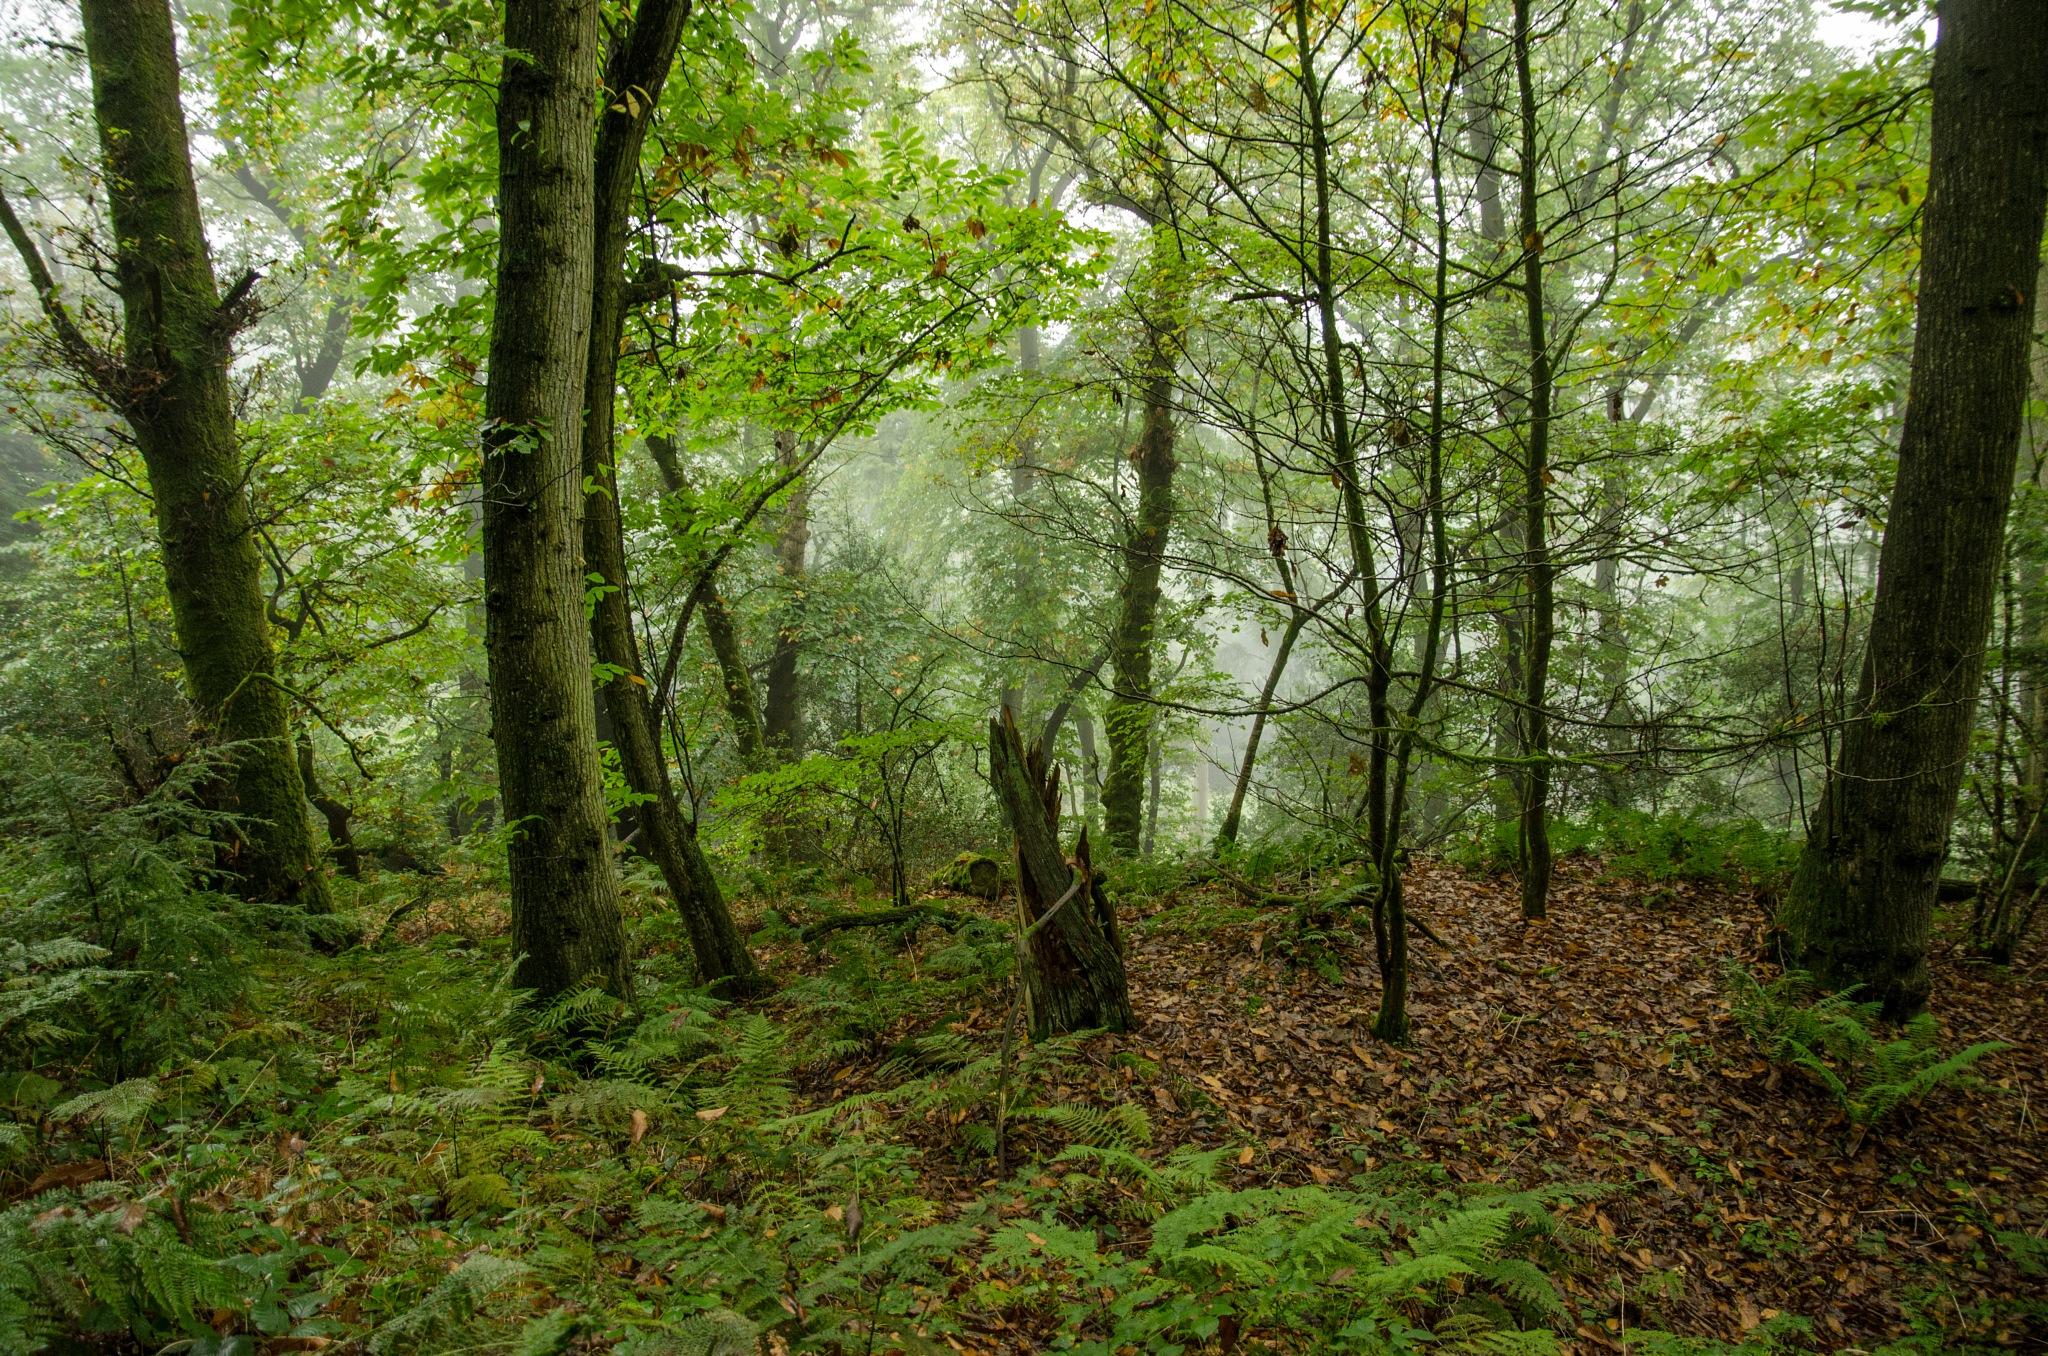 Misty forest by bfstubbs